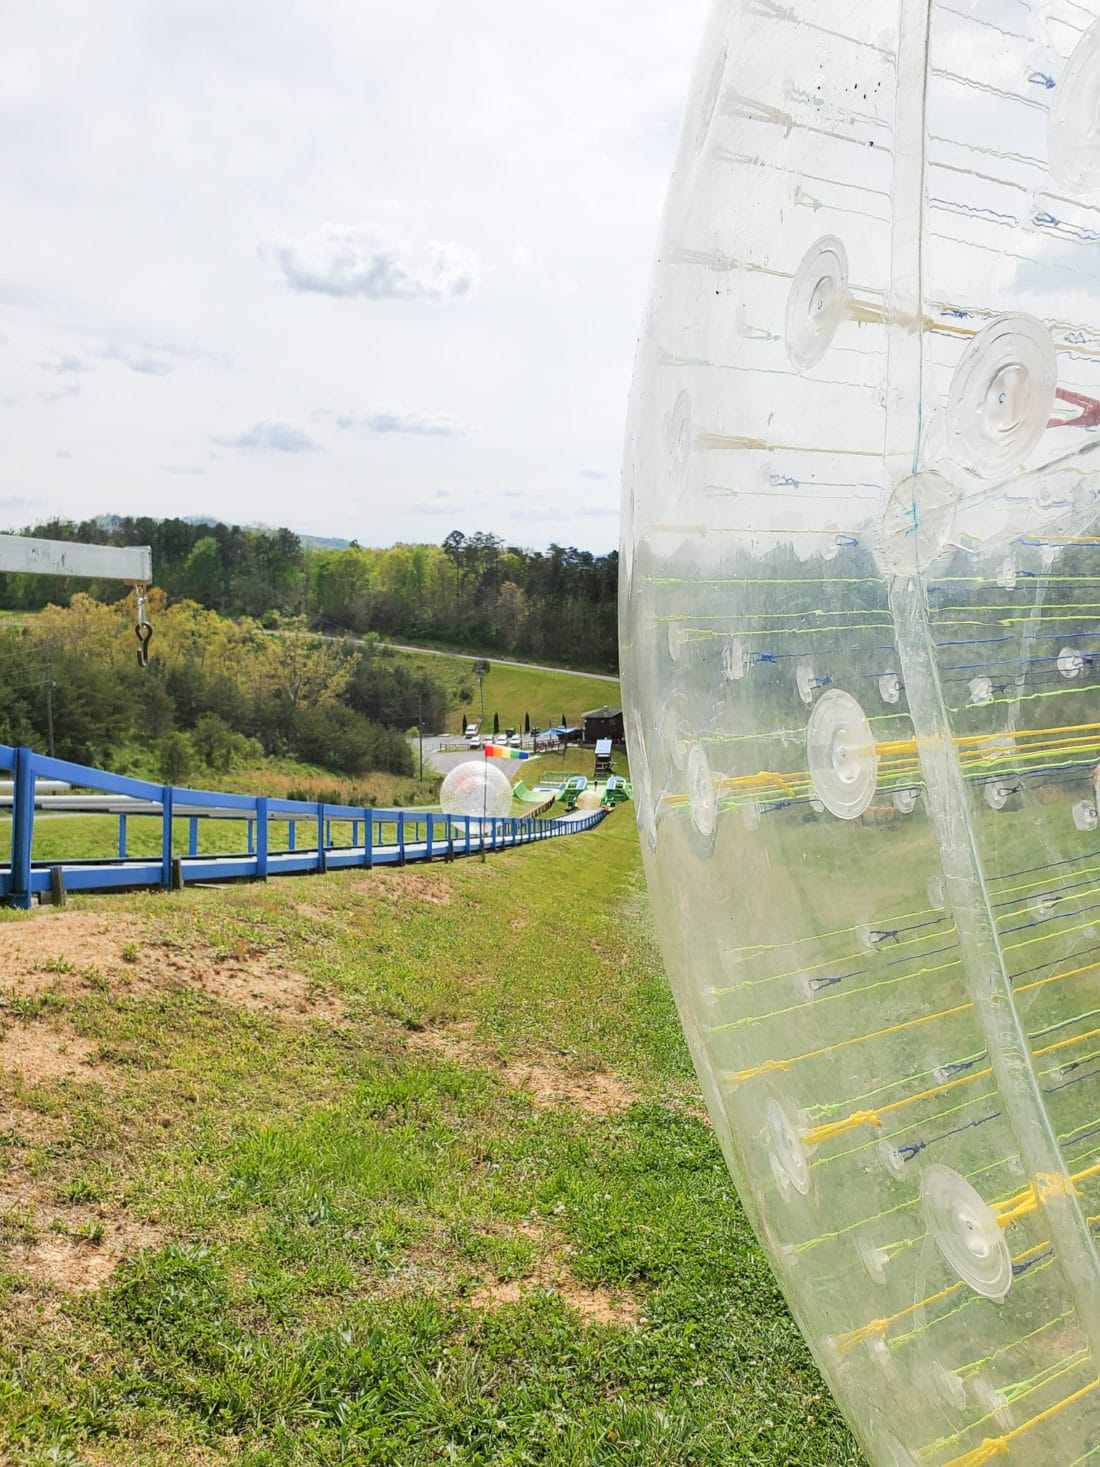 Outdoor Gravity Park Fast Track Closeup. Outdoor Gravity Park is an amazing adventure destination in Pigeon Forge, Tennessee at the foothills of the Smoky Mountains featuring zorbing, an attraction straight out of New Zealand.